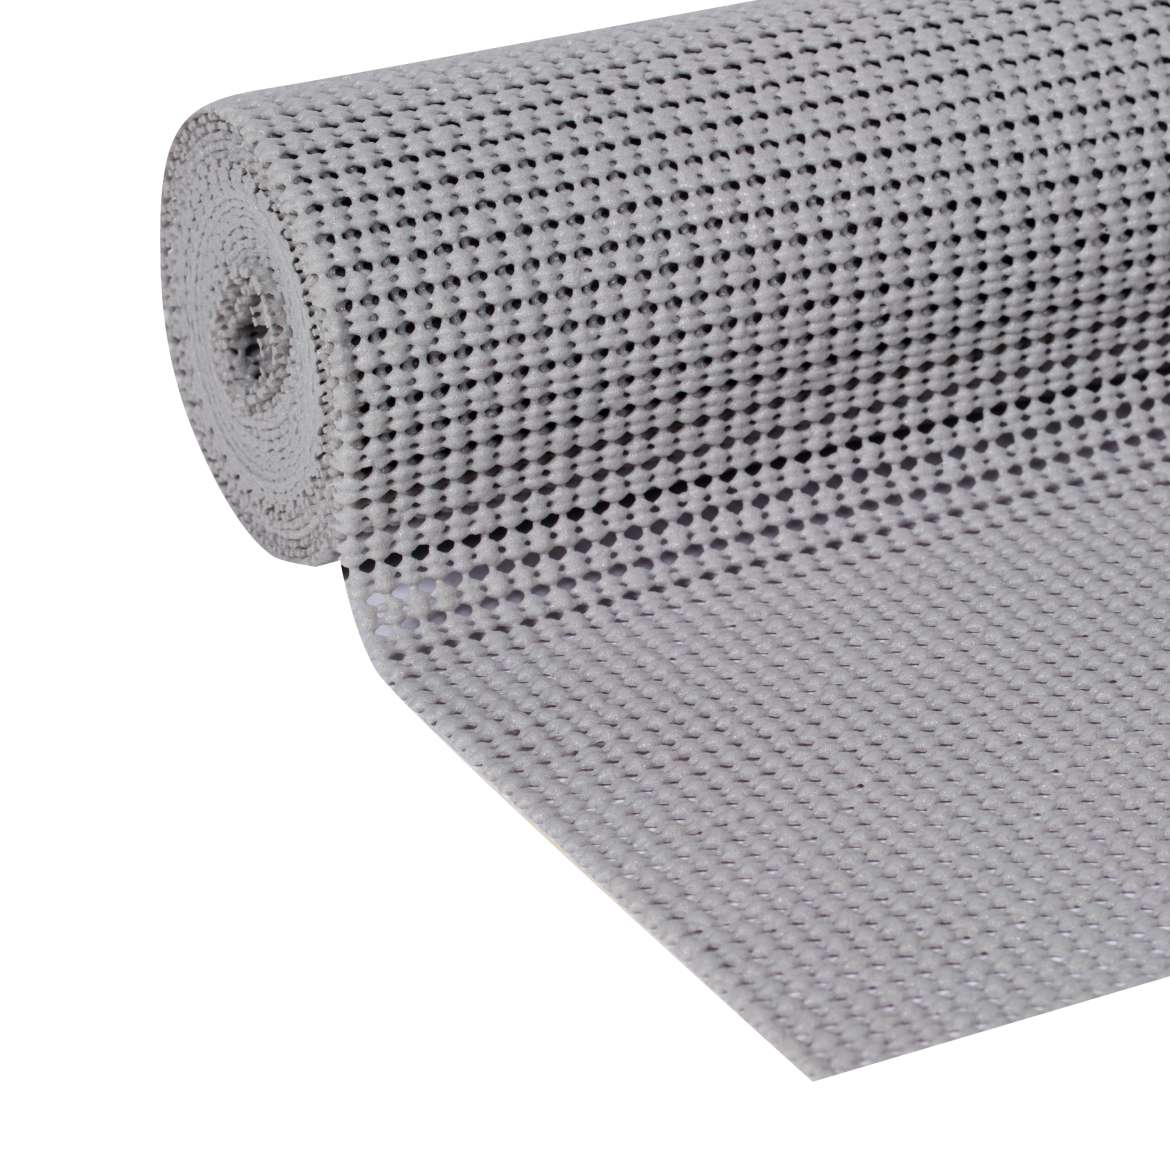 Duck Brand Select Grip Easy Liner Brand Shelf Liner - Light Gray, 12 in. x 10 ft.